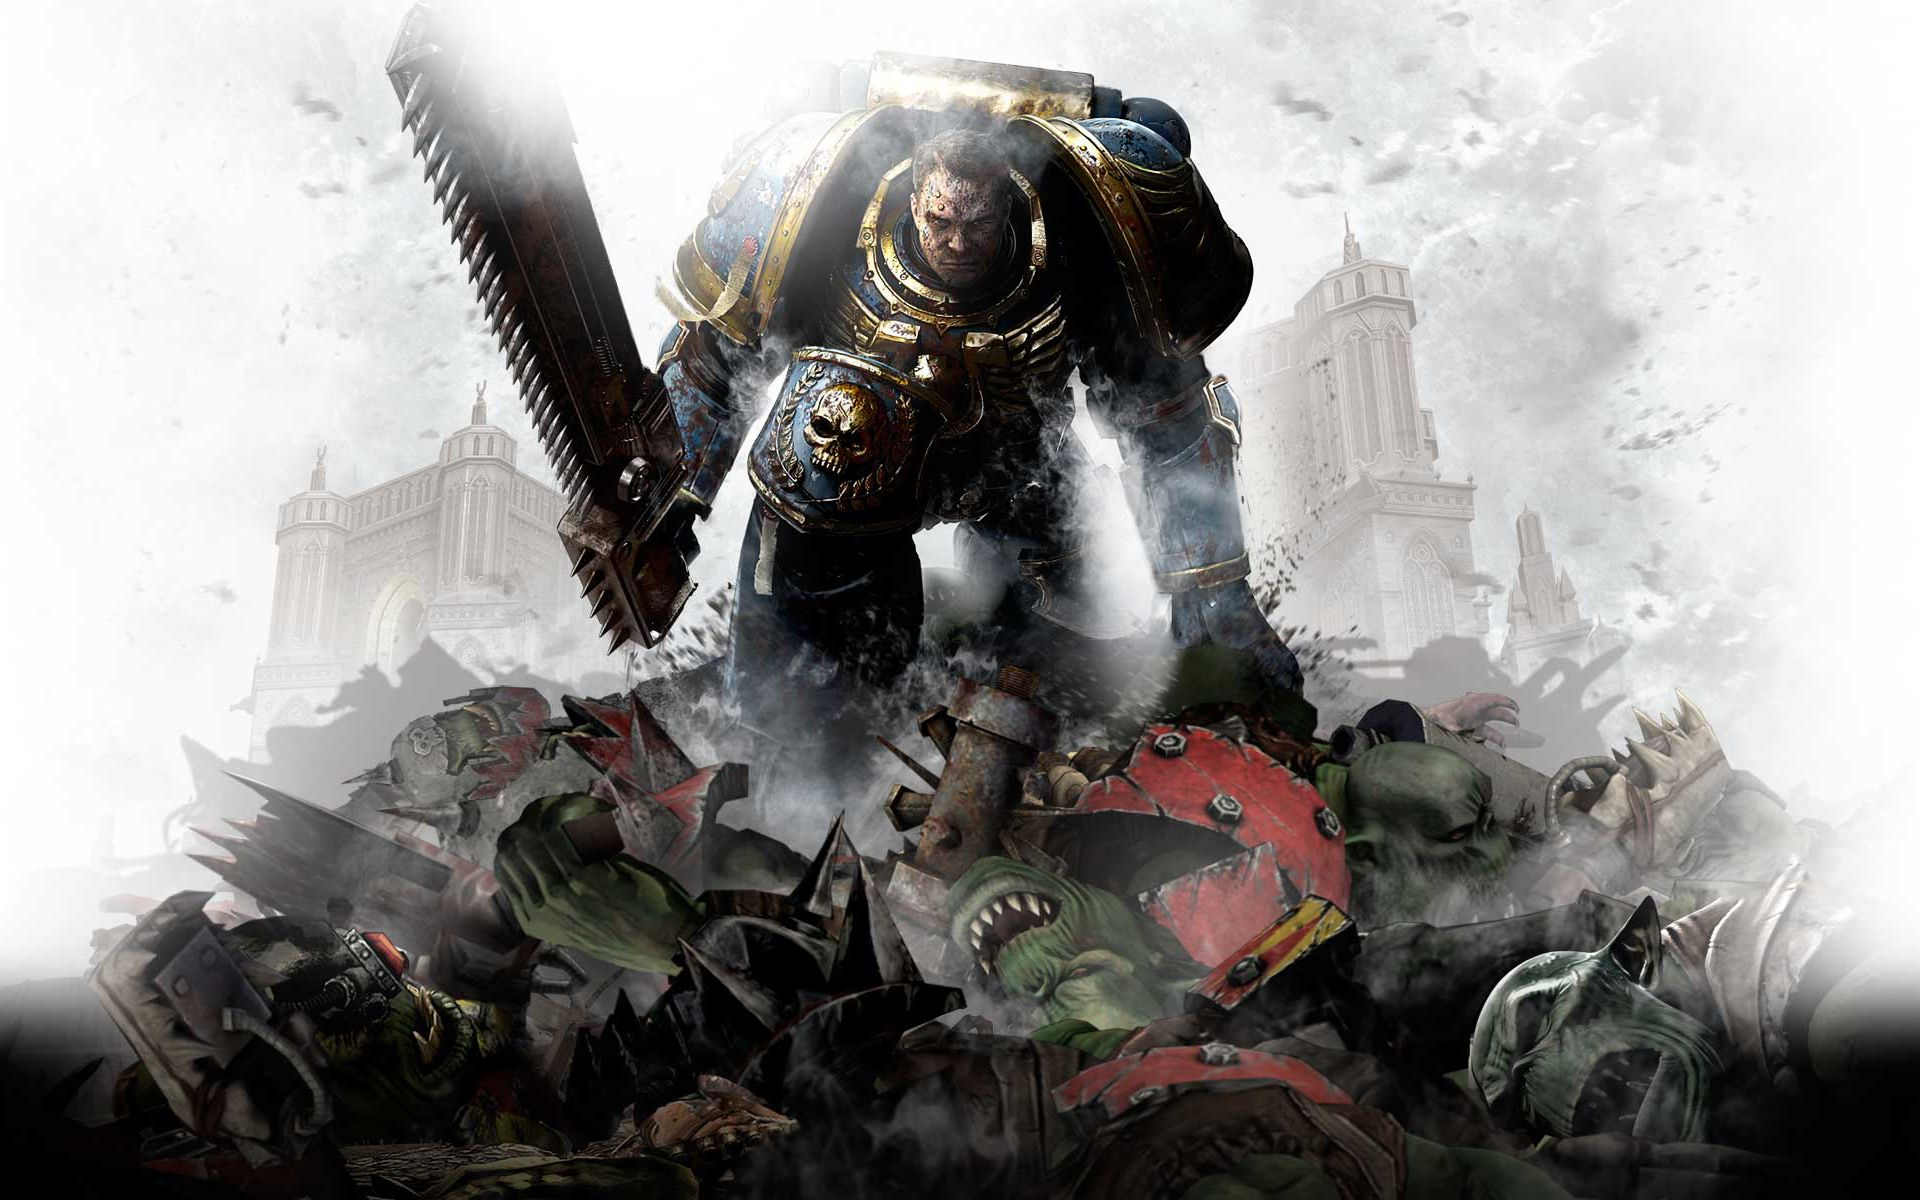 Warhammer 40k Hd Wallpapers And Backgrounds Warhammer Wallpaper